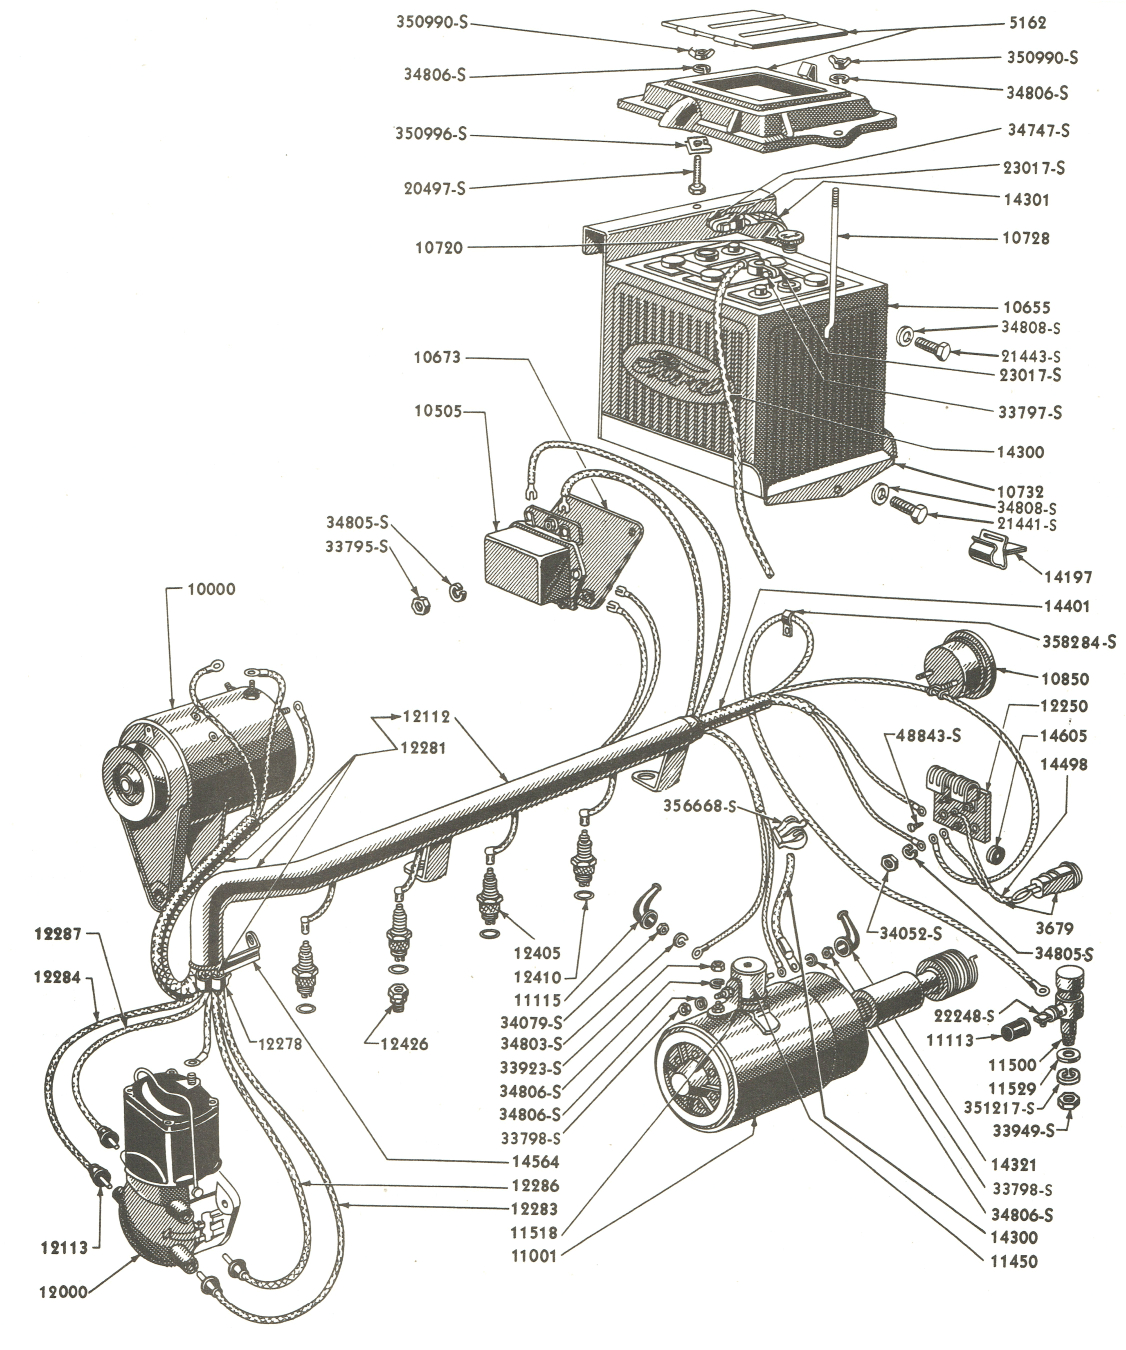 ford wiring parts wiring diagram databaseford parts wiring